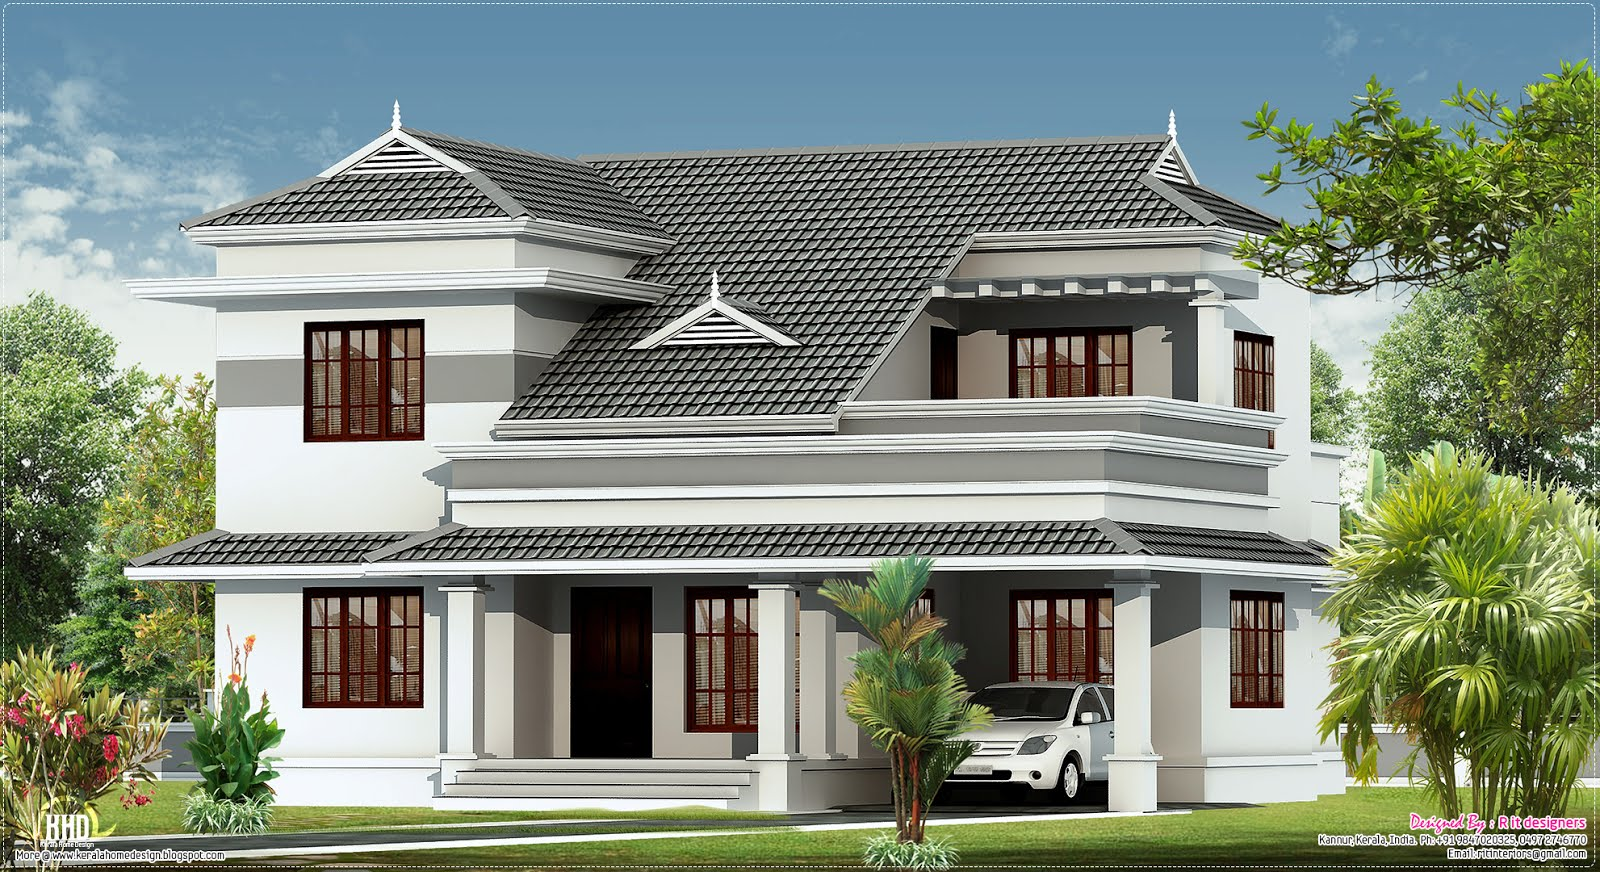 New villa design in 2250 kerala home design and for Latest modern house plans